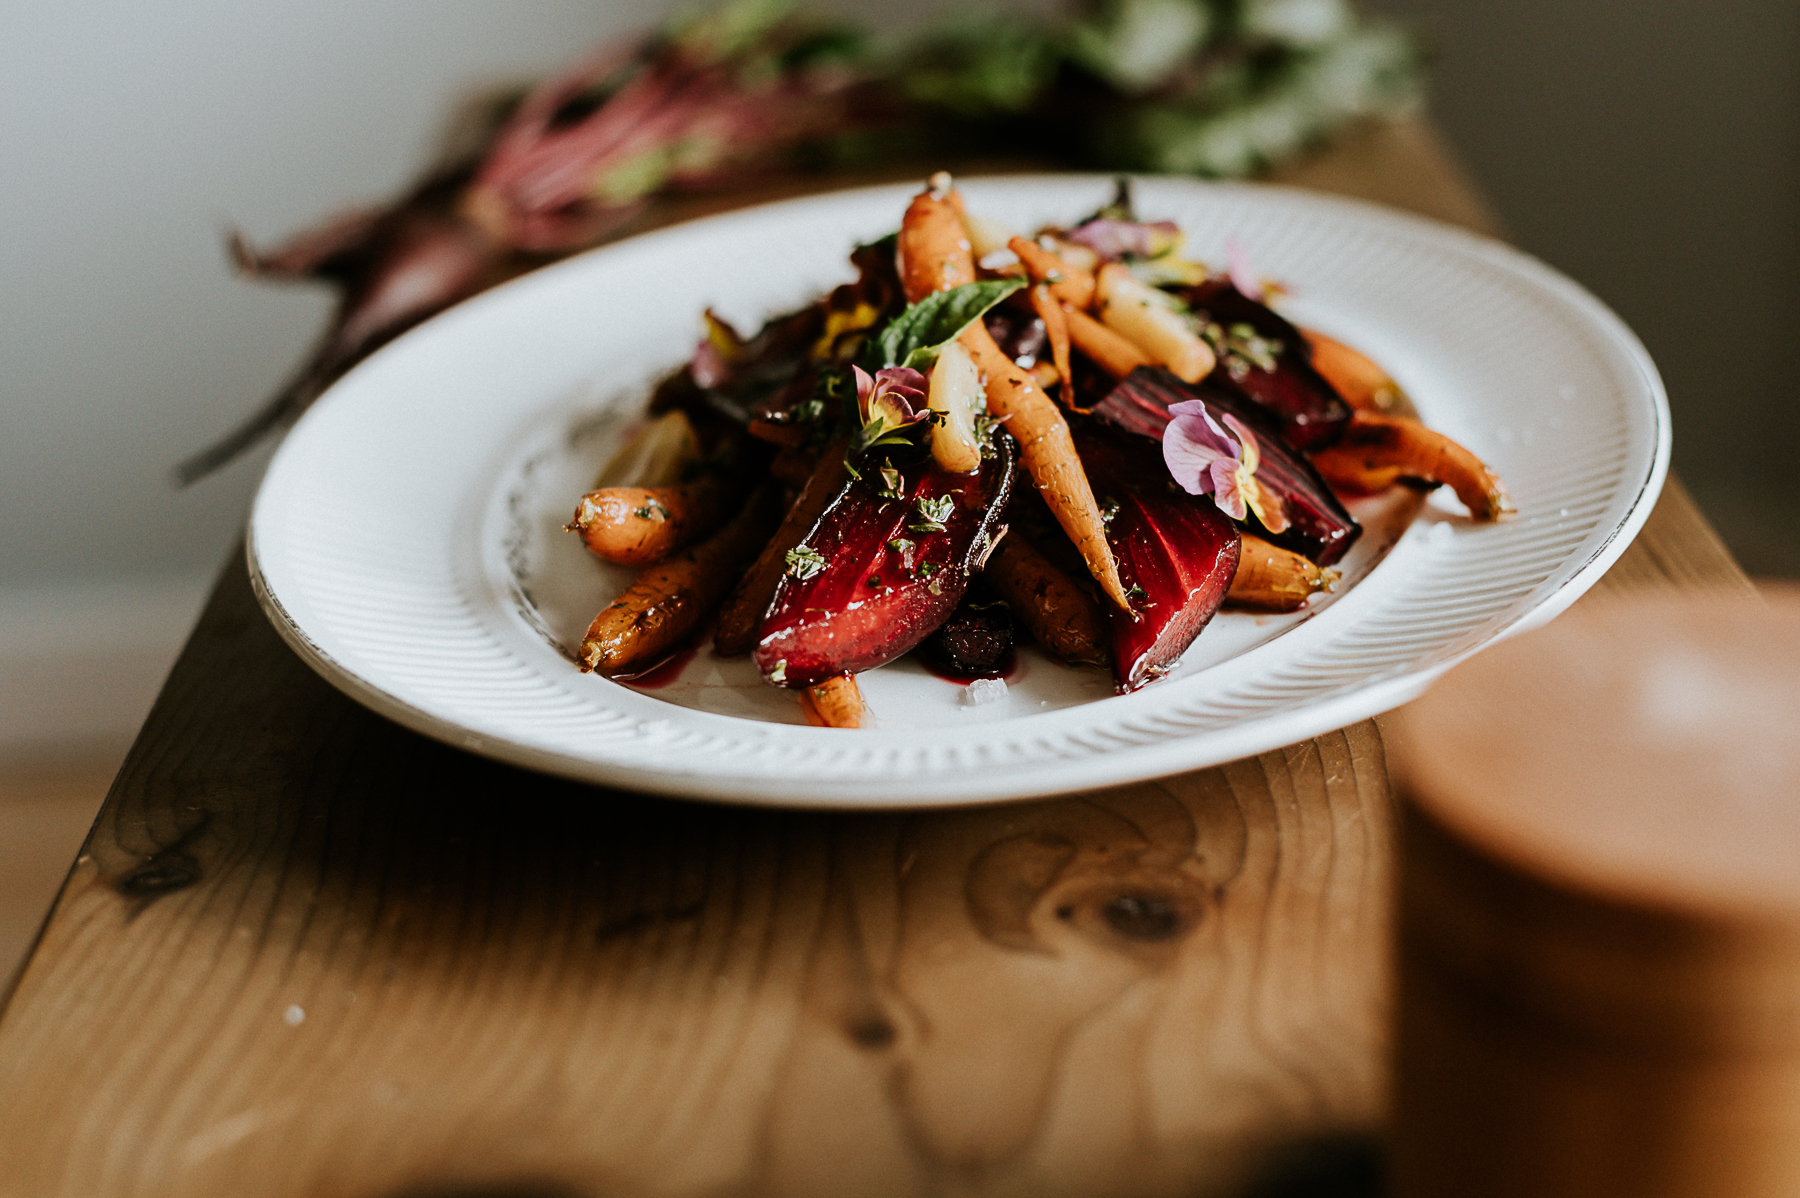 Roasted Beet Salad With Herb & Mint Dressing-16.jpg